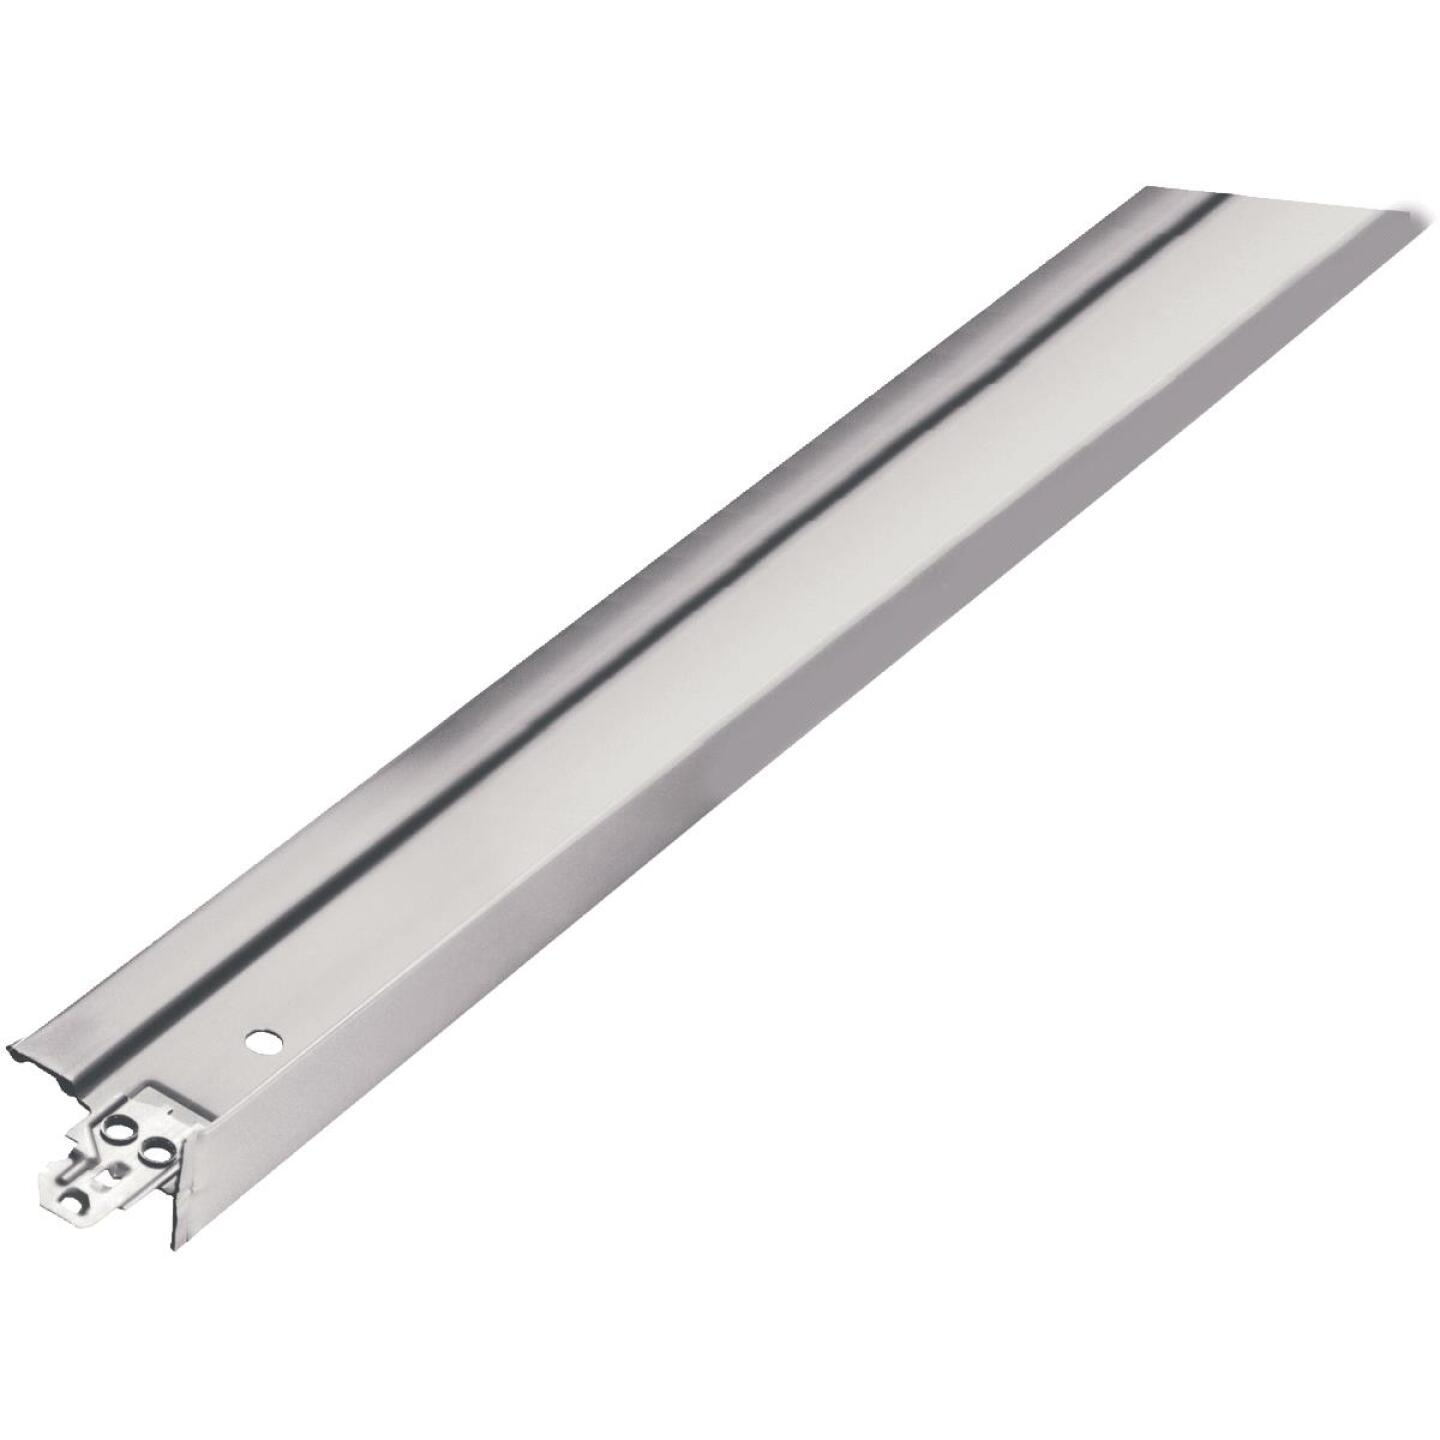 Donn 12 Ft. x 1-1/2 In. White Steel Fire Resistant Main Tee Image 2